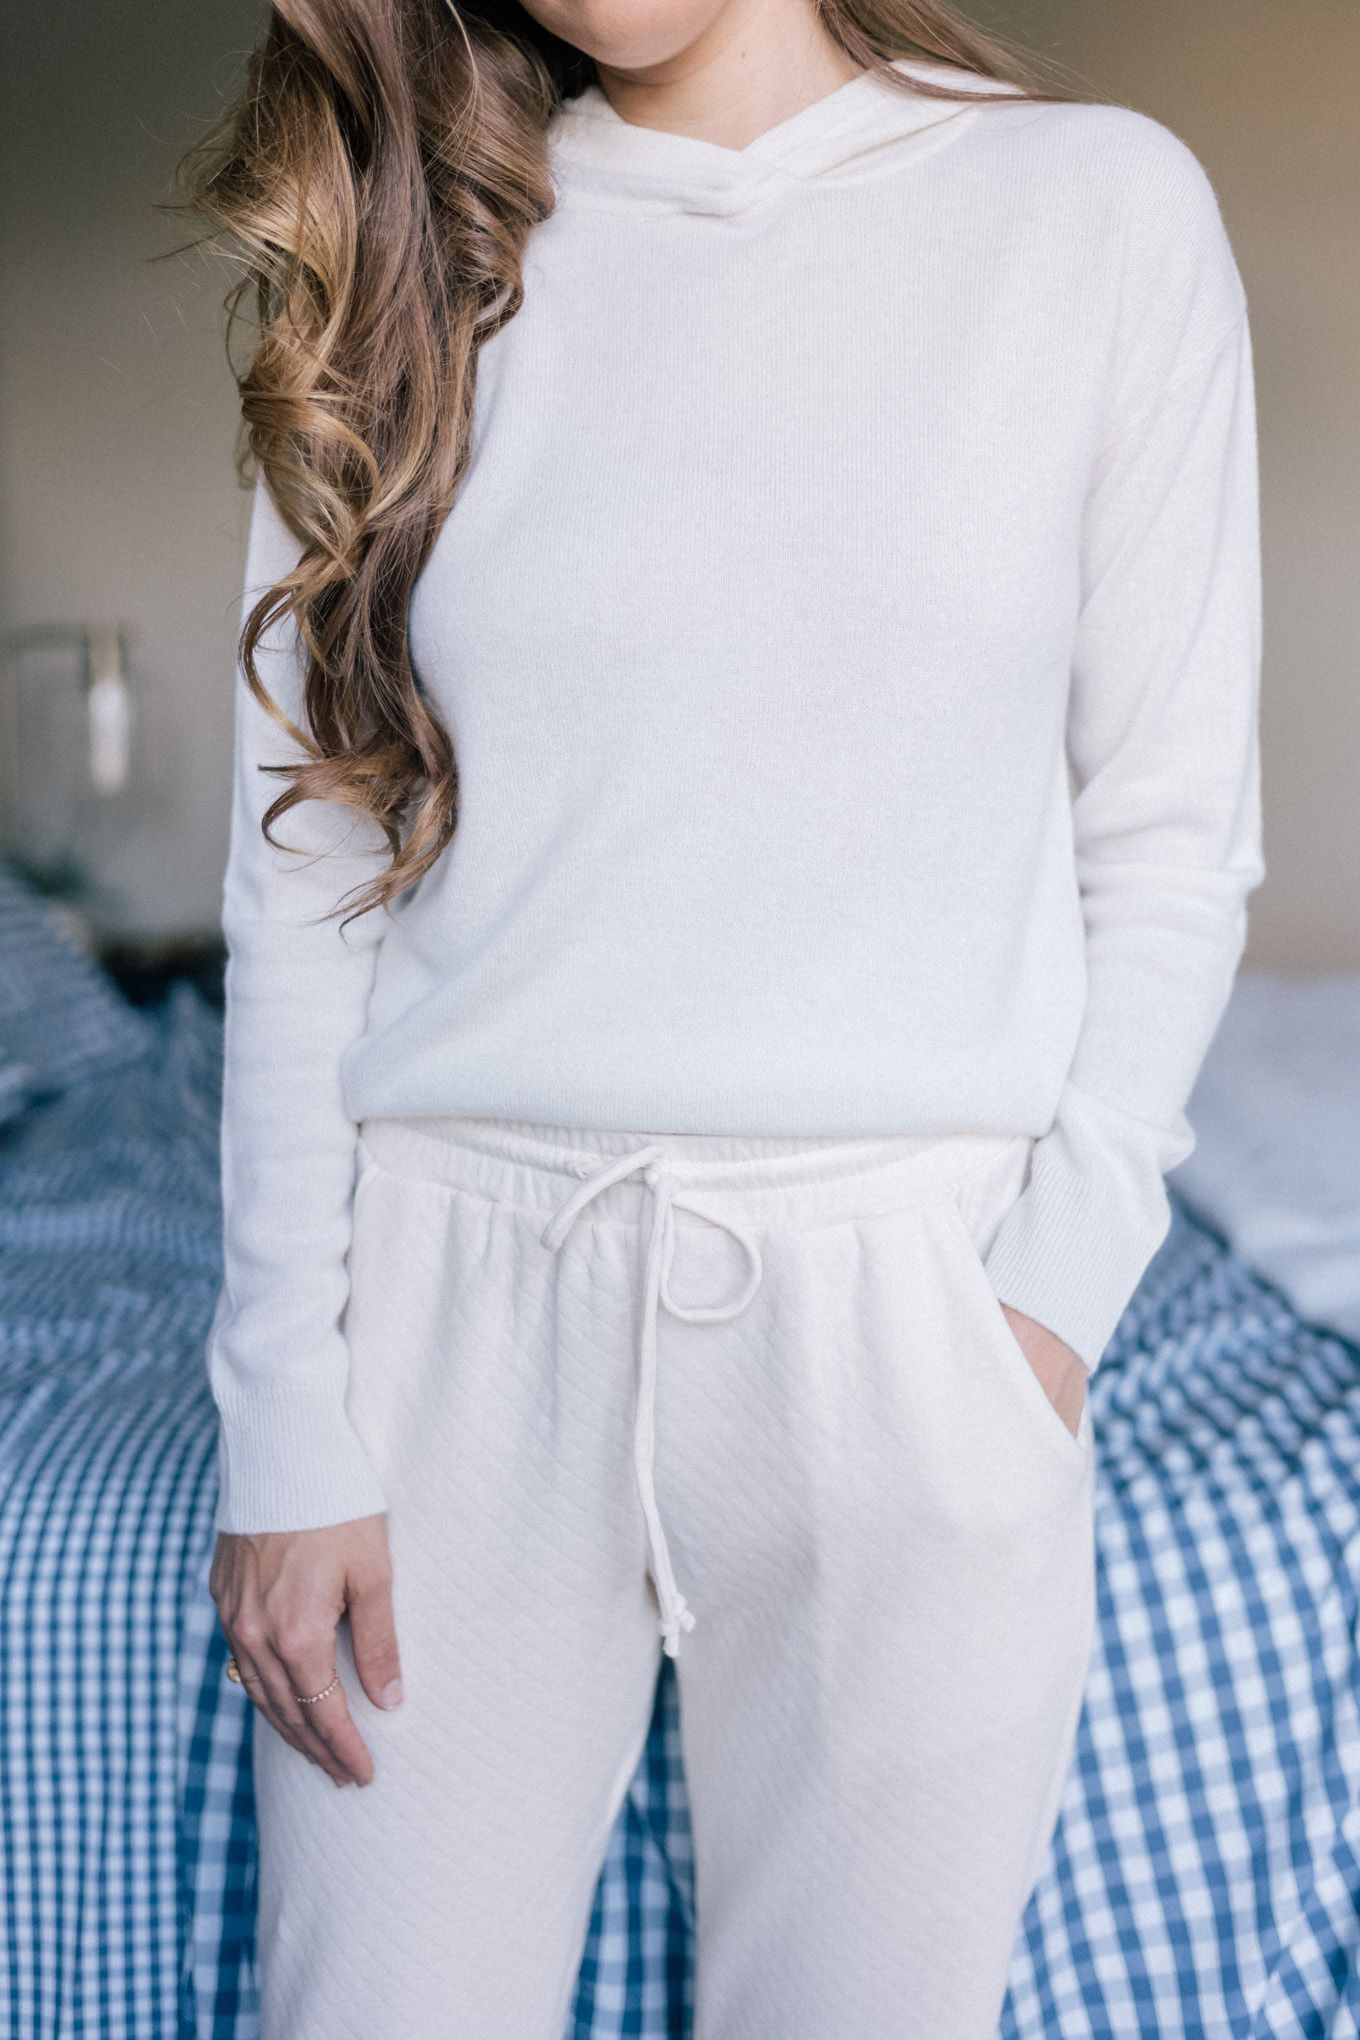 2019 year style- Chic and cozy winter pajamas